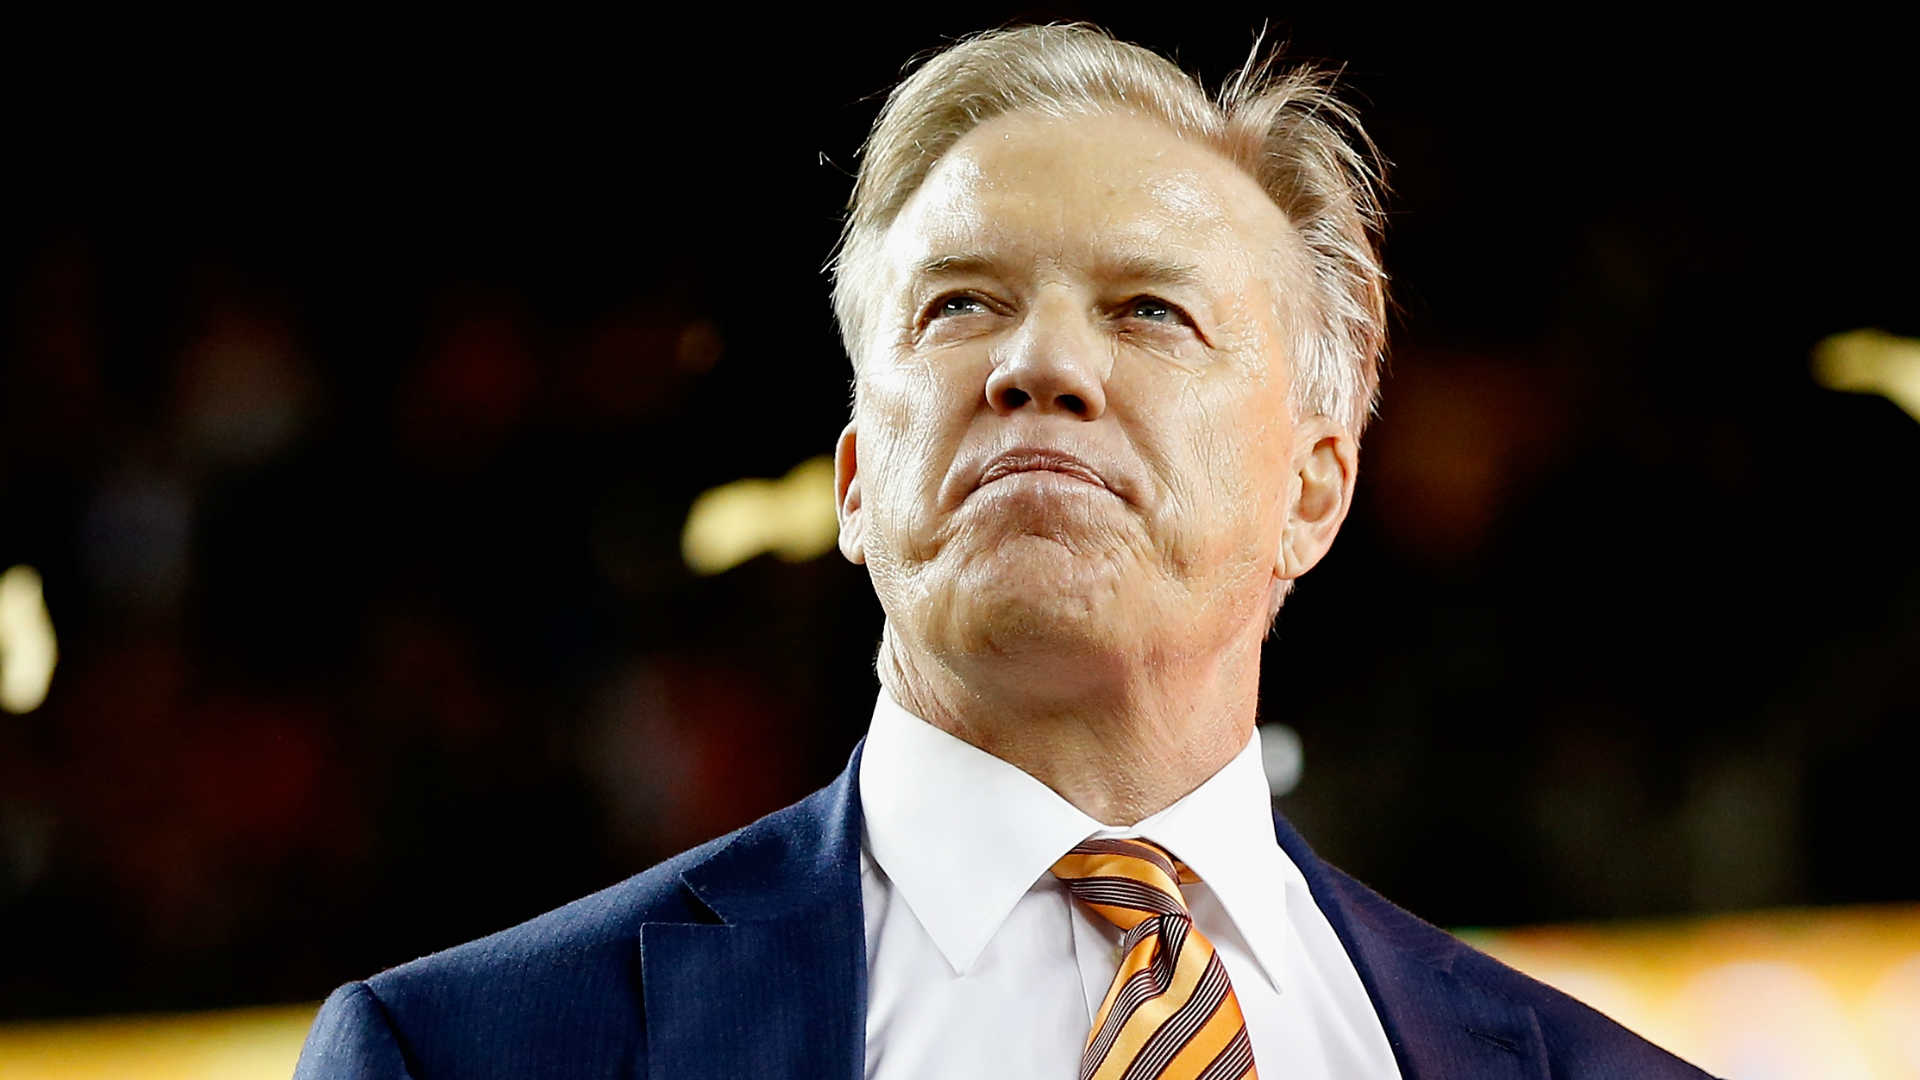 Broncos' John Elway opens up about 15-year battle with debilitating hand condition